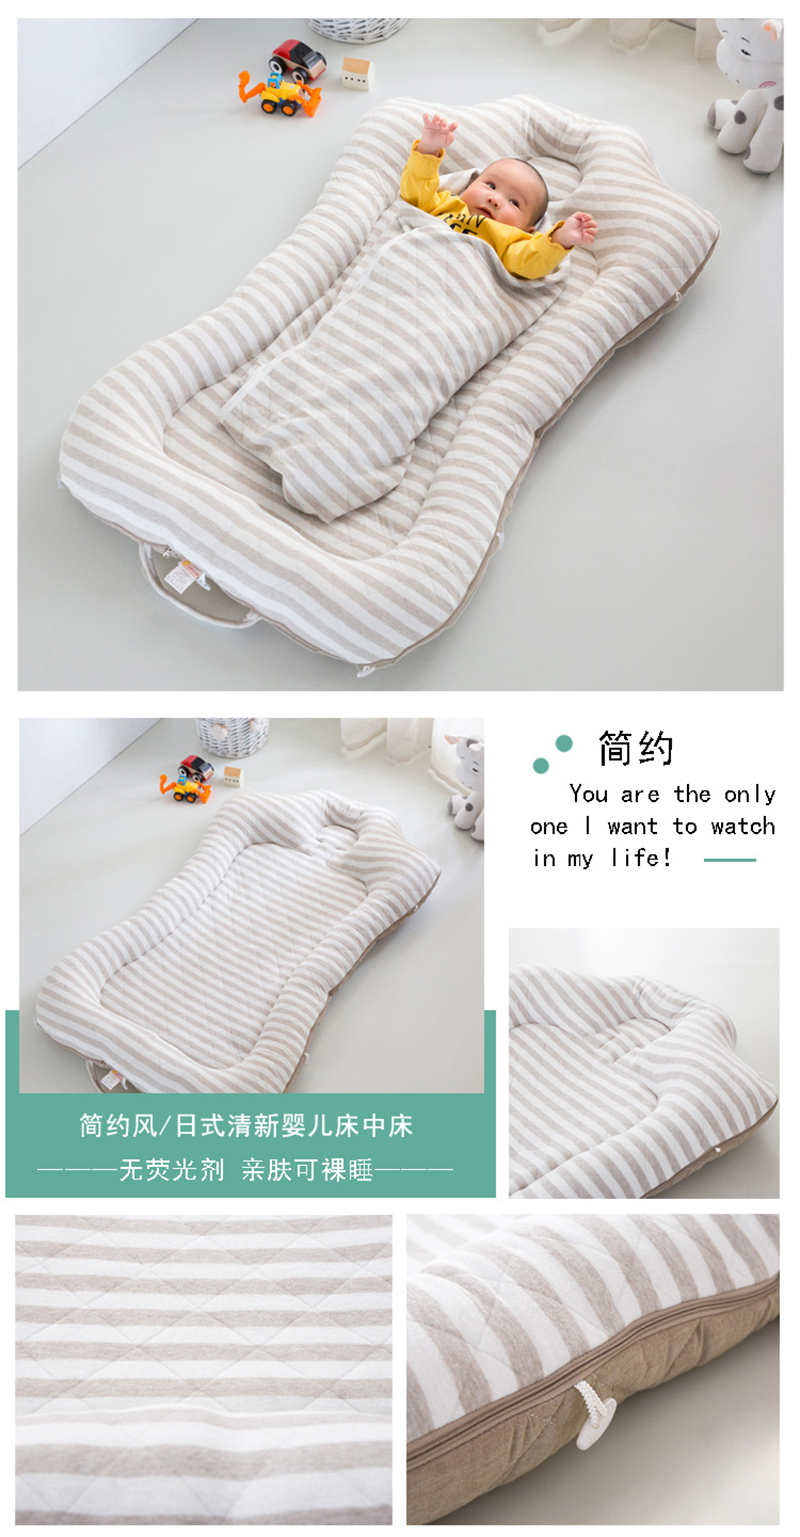 Portable Cotton Crib Fitted Sheet Soft Baby Bed Mattress Cover Protector Cartoon Newborn Bedding For Cot Size 60*110cm Baby Furniture